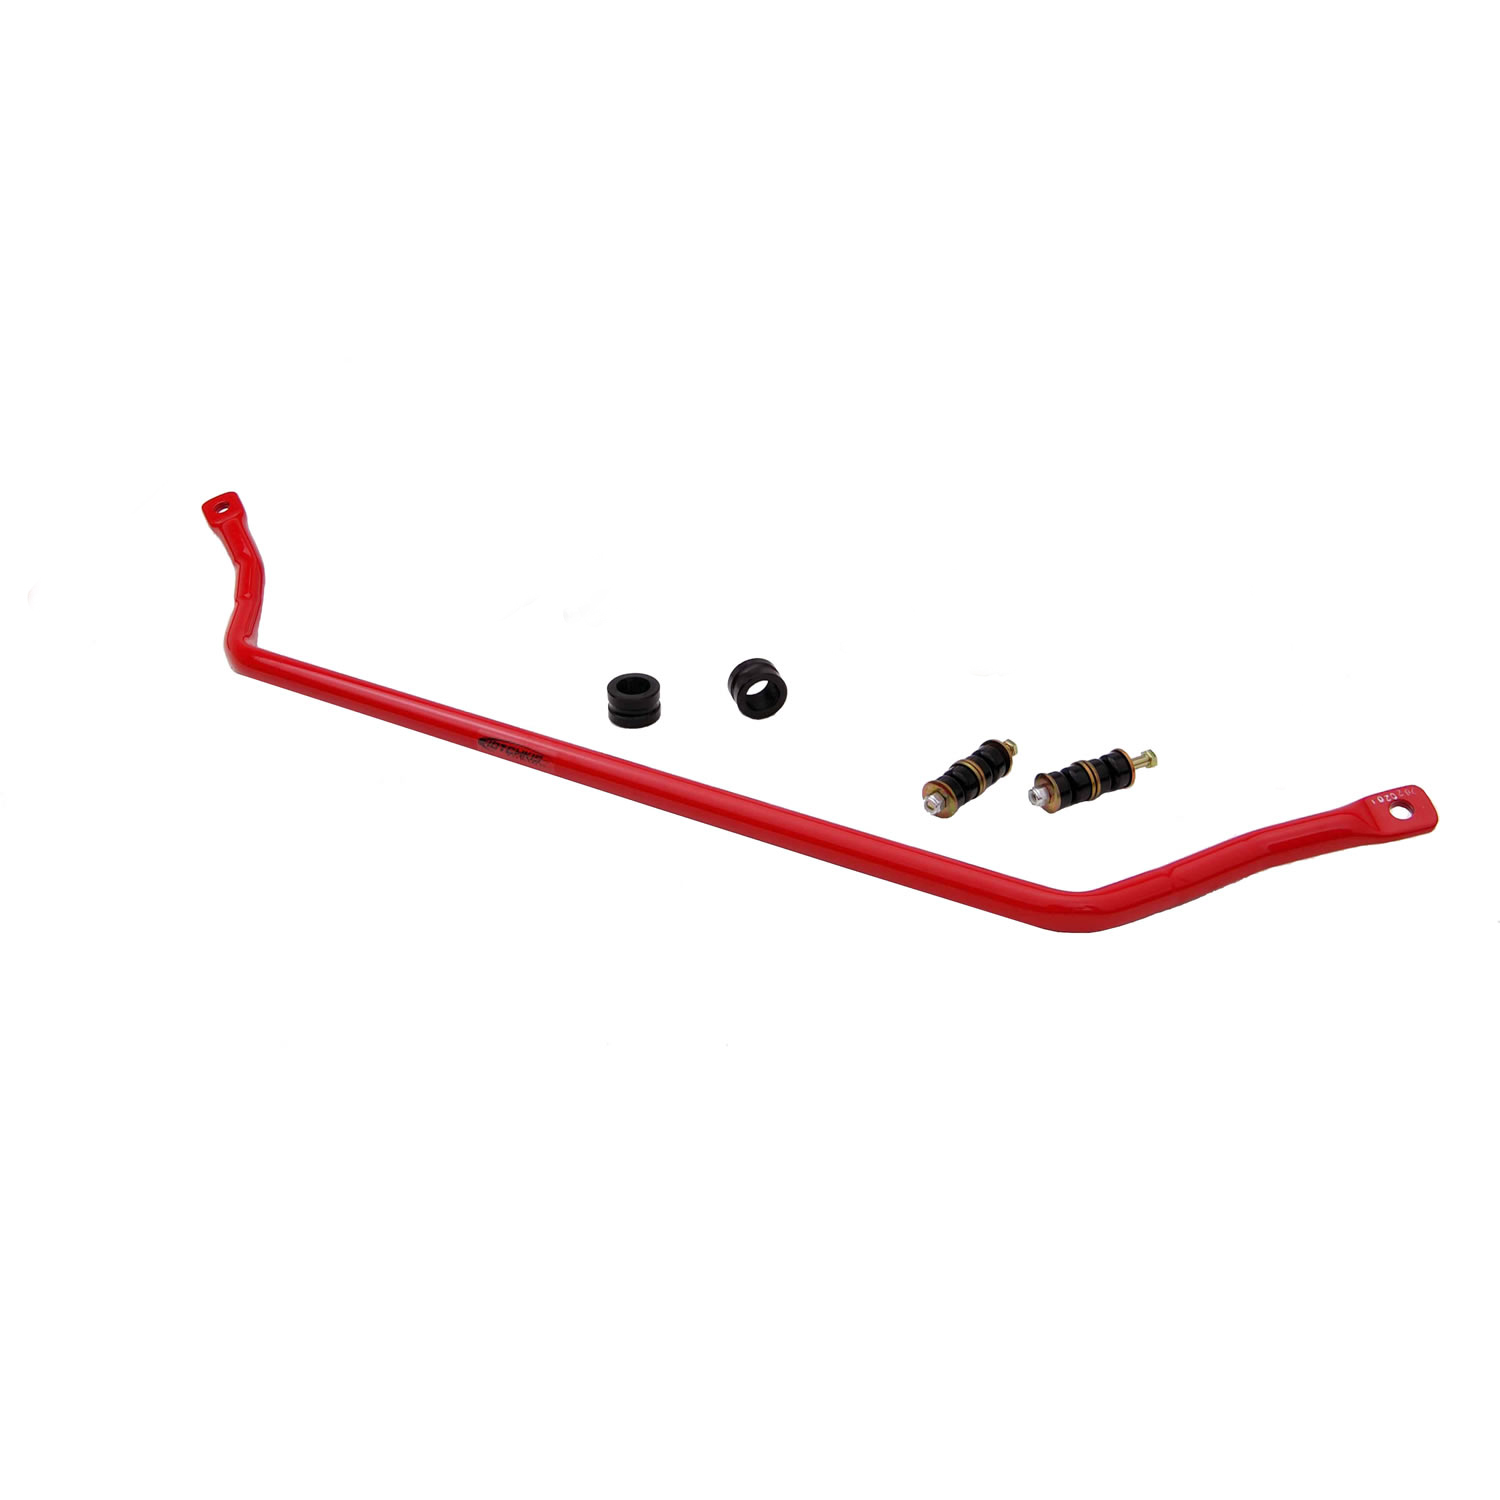 2003-2005 Dodge Neon SRT4 Front Sport Sway Bar from Hotchkis Sport Suspension